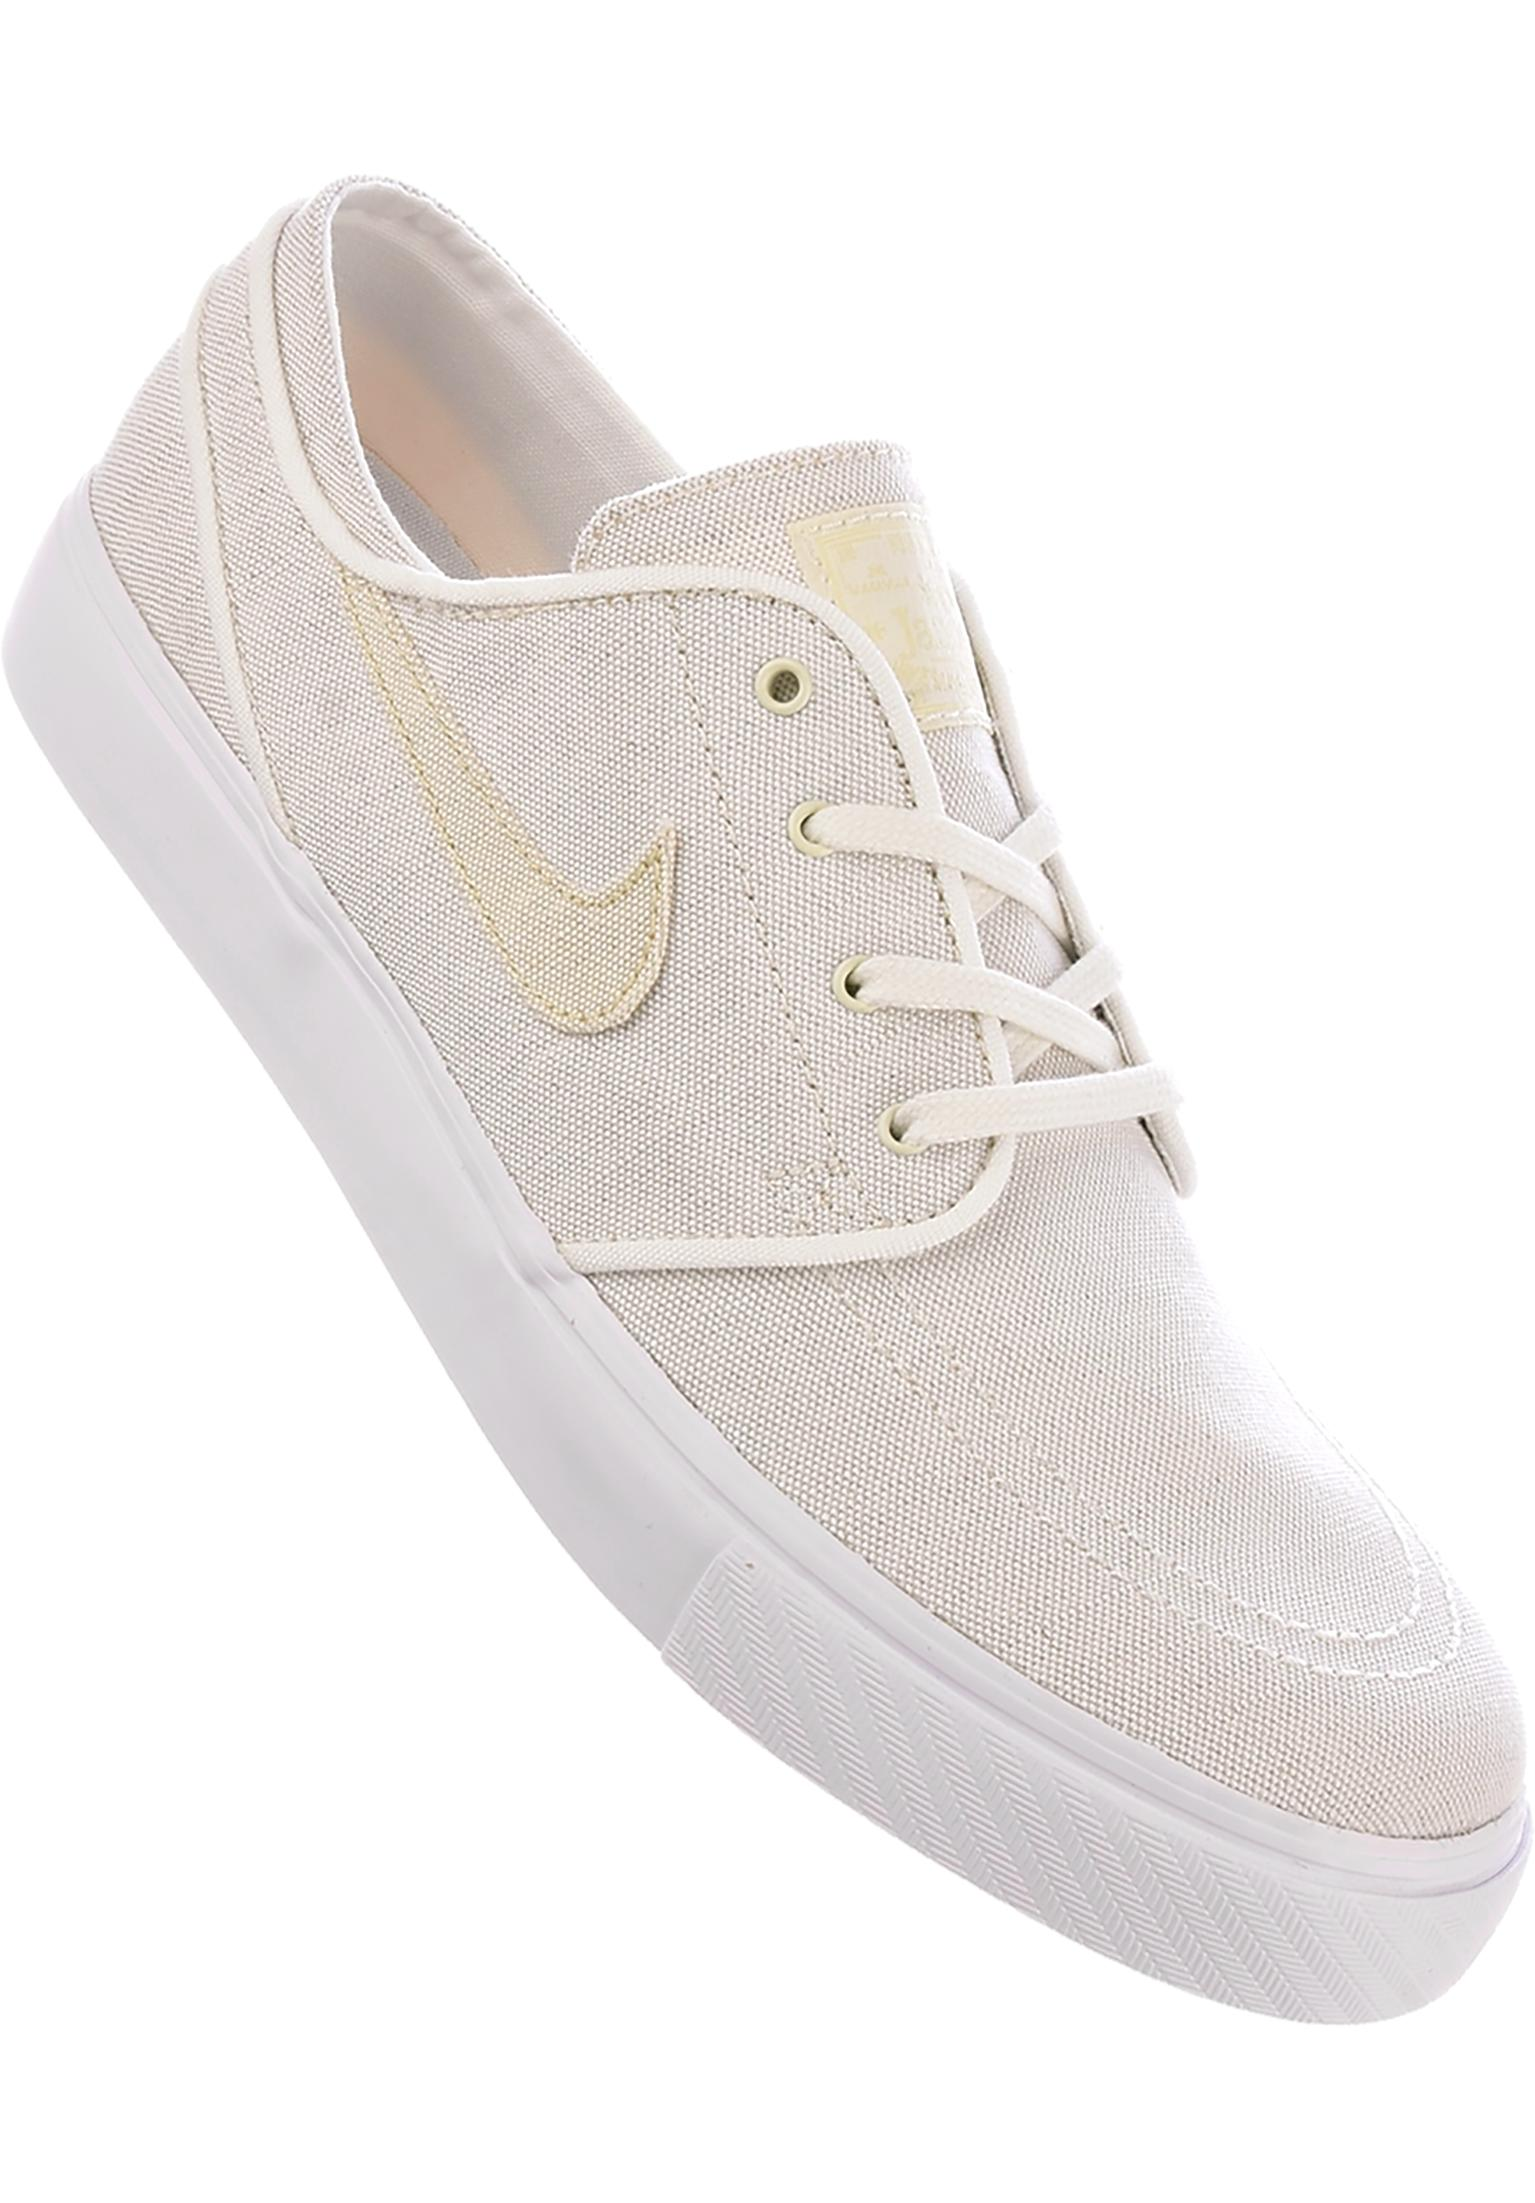 6285c1b151 Zoom Stefan Janoski Deconstructed Nike SB All Shoes in sail-fossil for Men